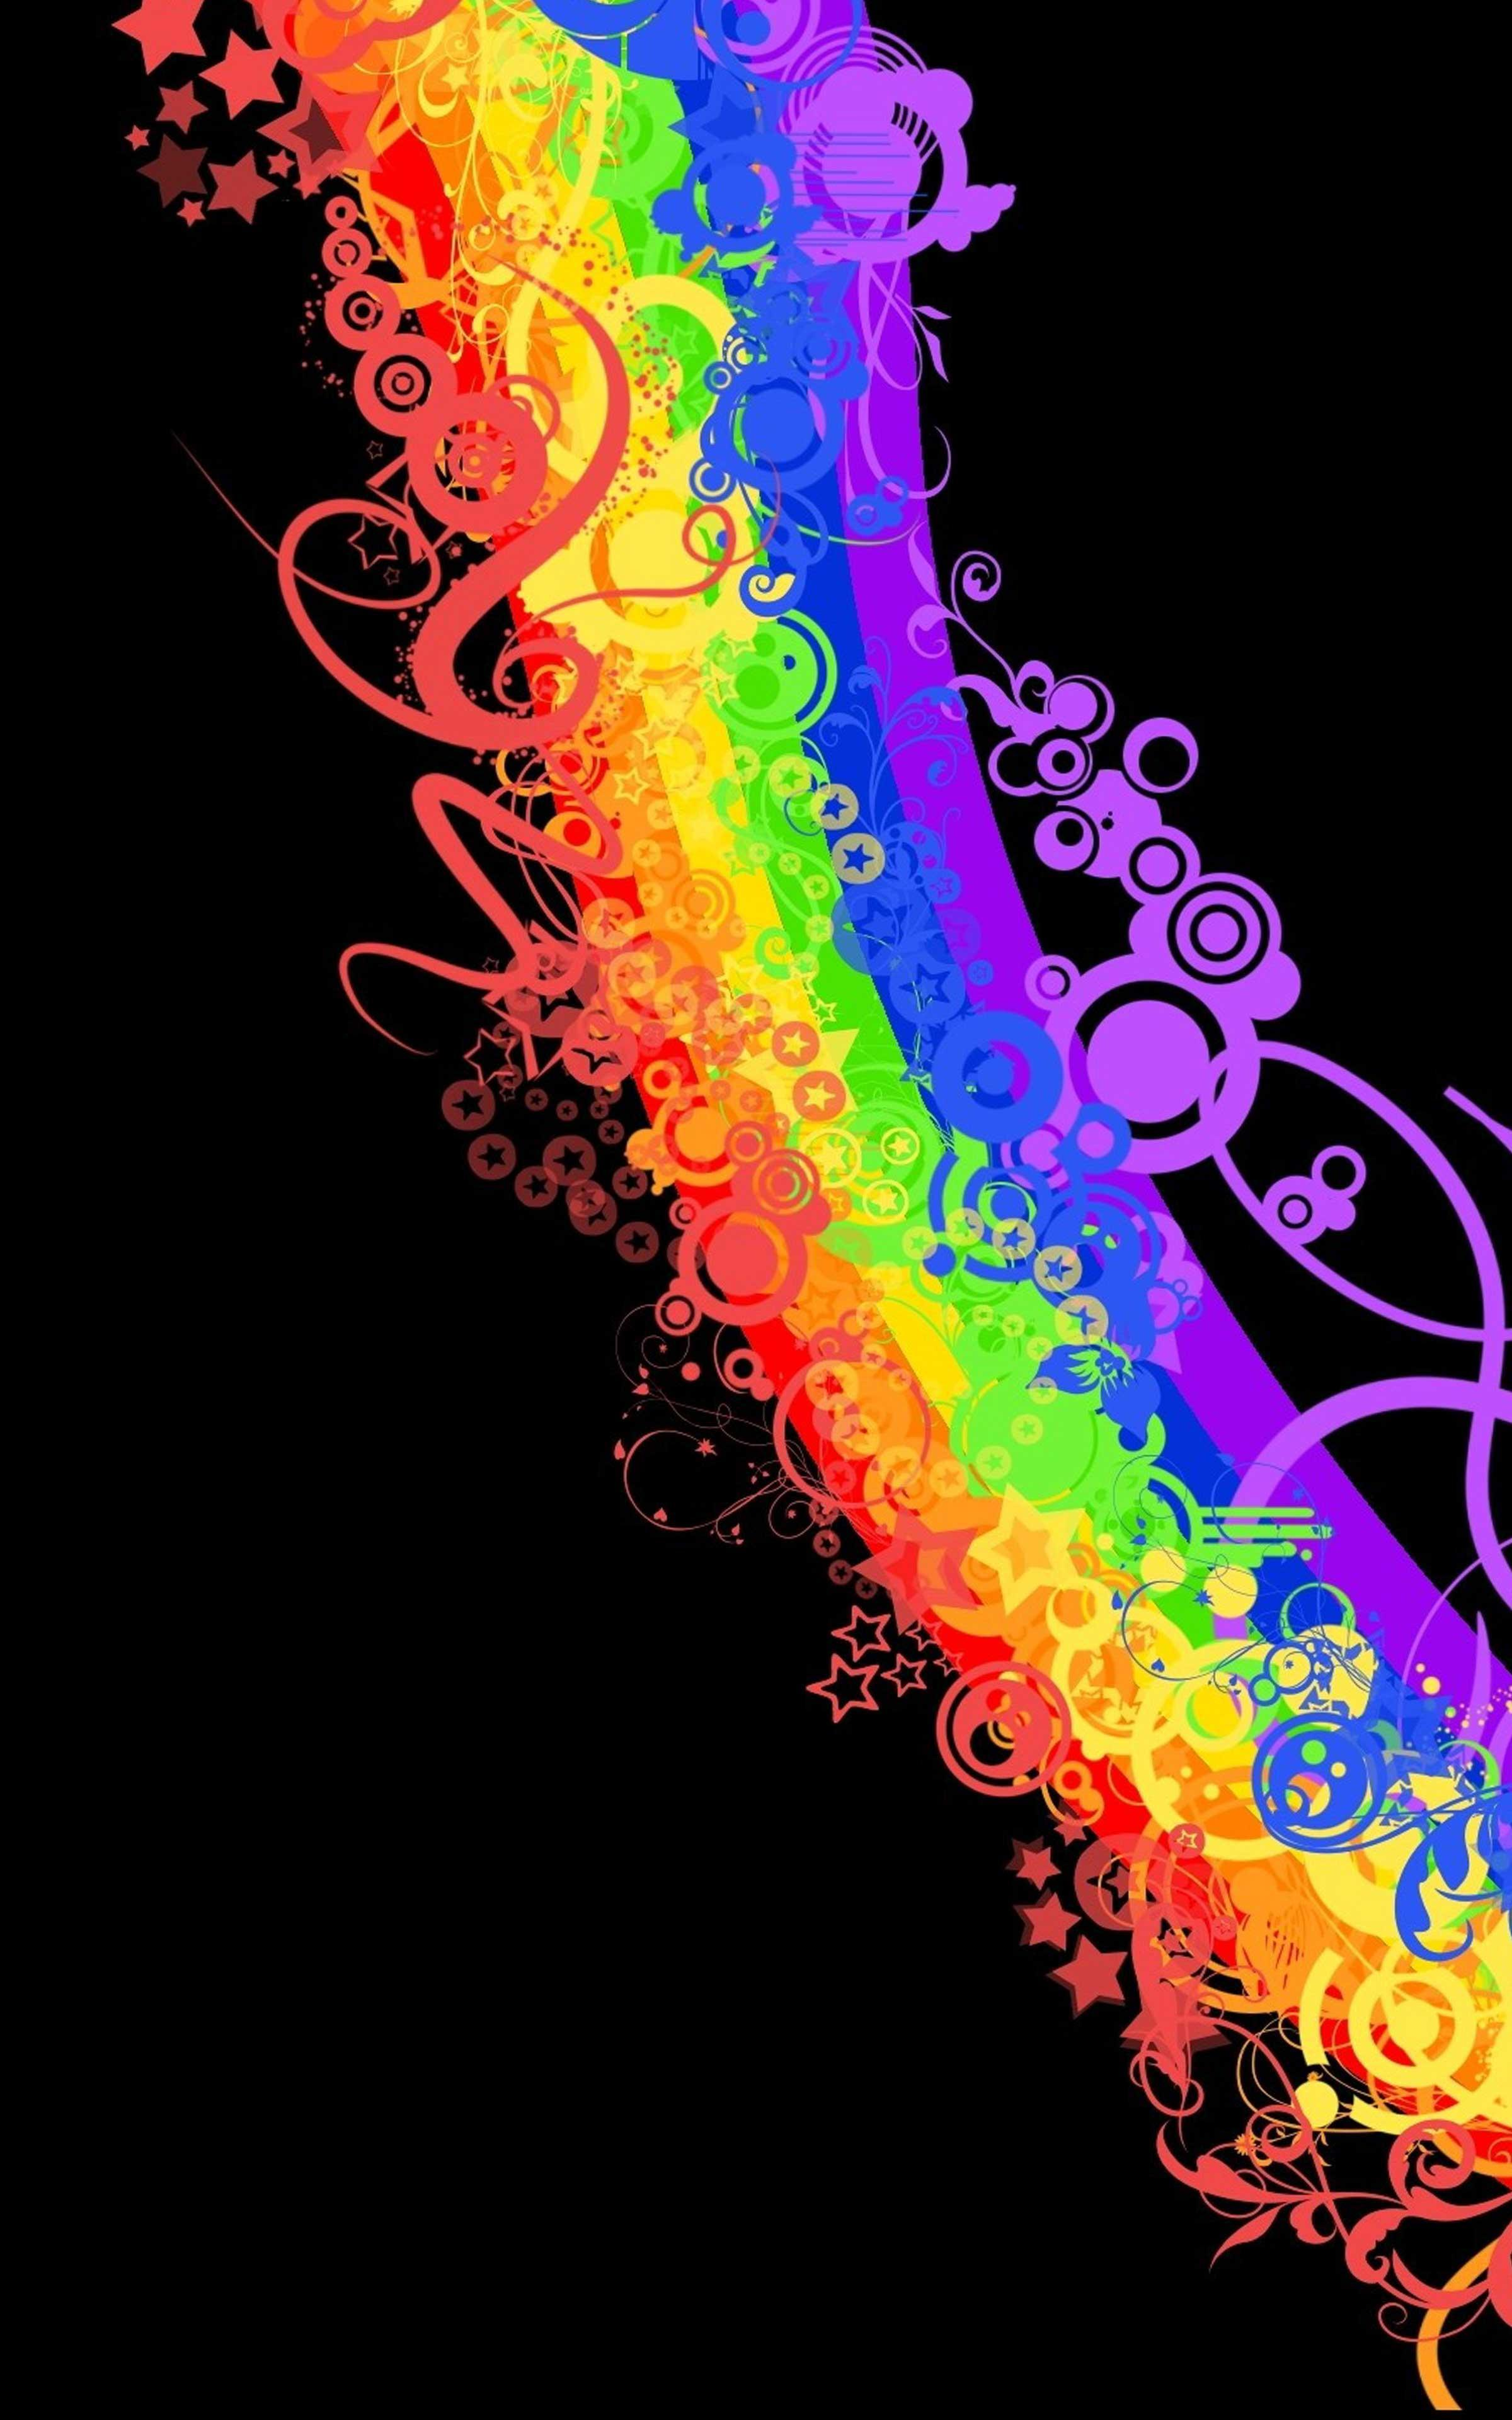 Rainbow Wallpaper For Walls Rainbow Wallpapers For Android